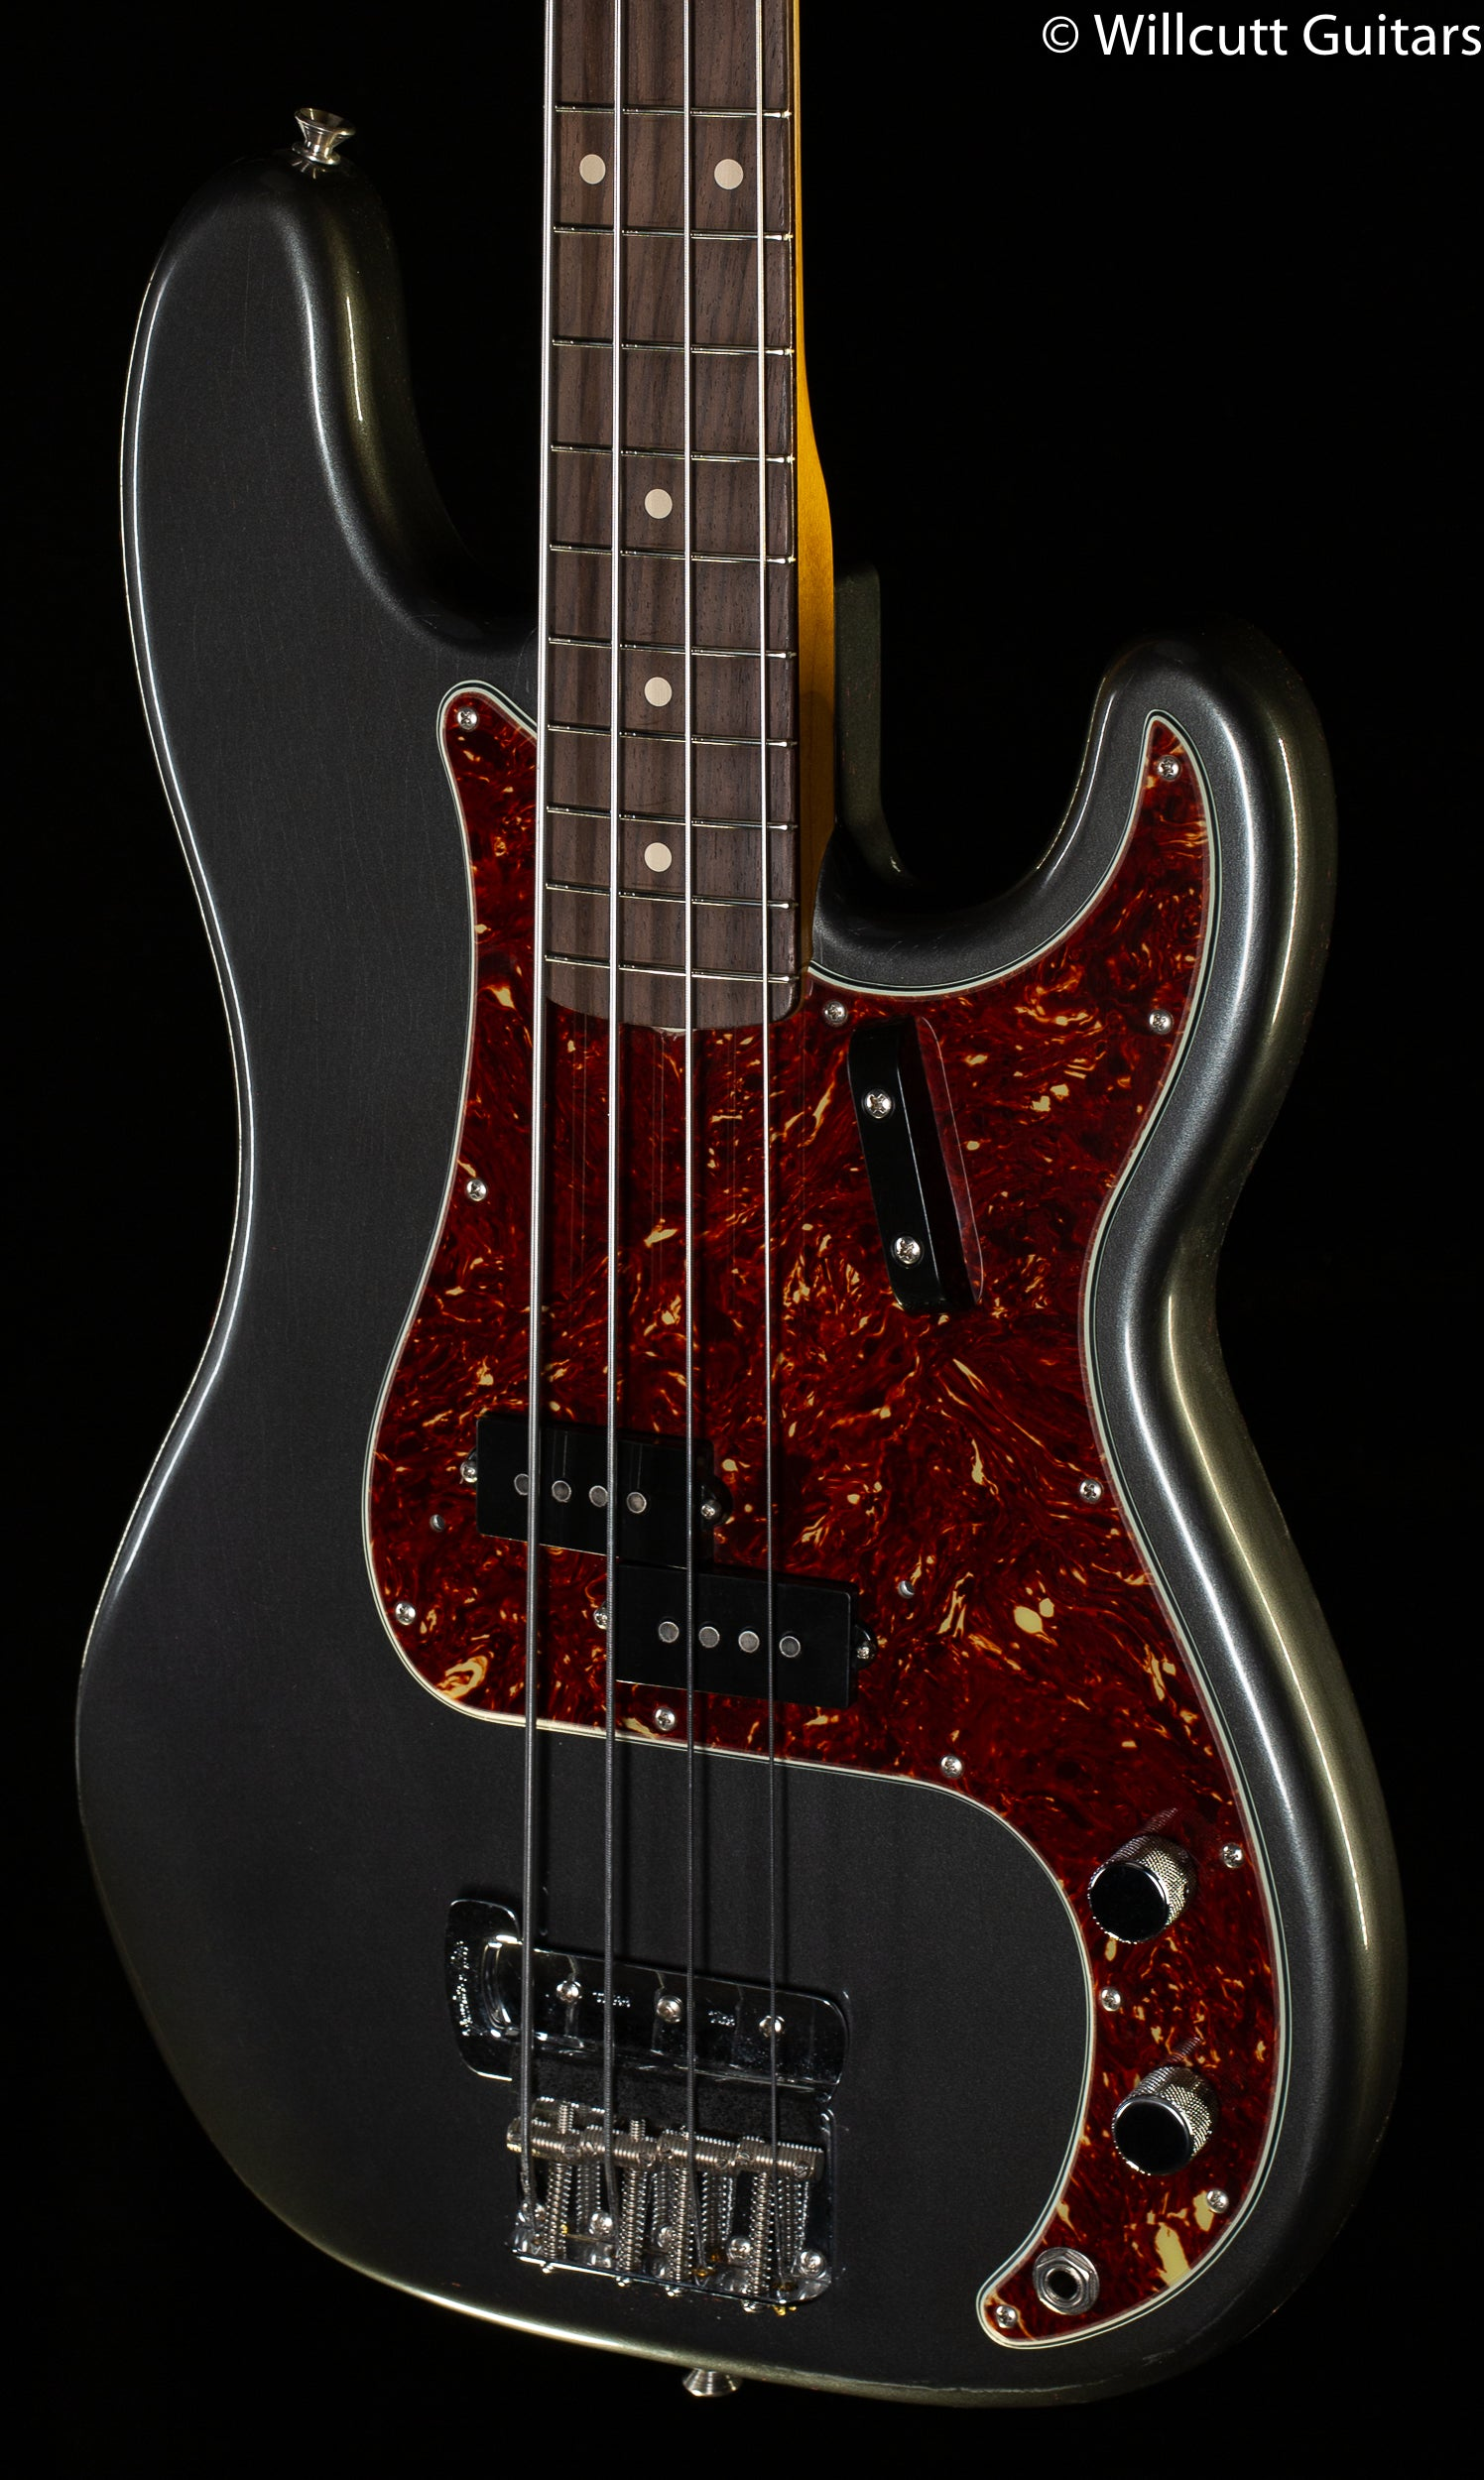 Fender Custom Shop Sean Hurley Signature 1961 Precision Bass Rosewood Fingerboard Aged Charcoal Frost